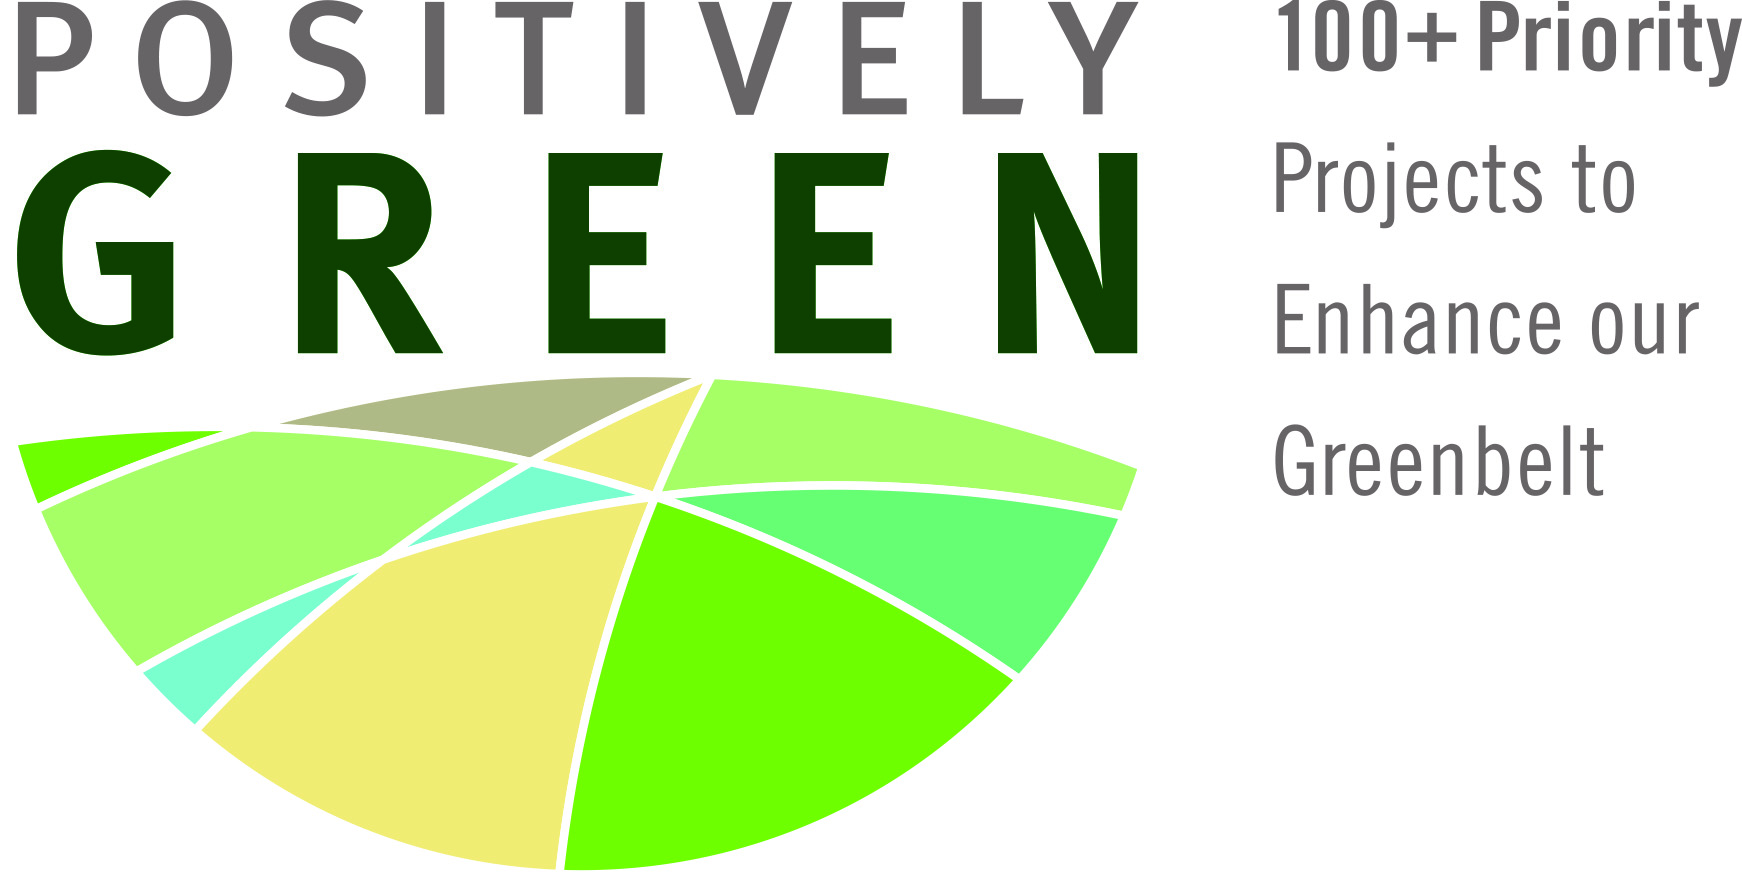 Positively_Green_Logo_Artwork.jpg